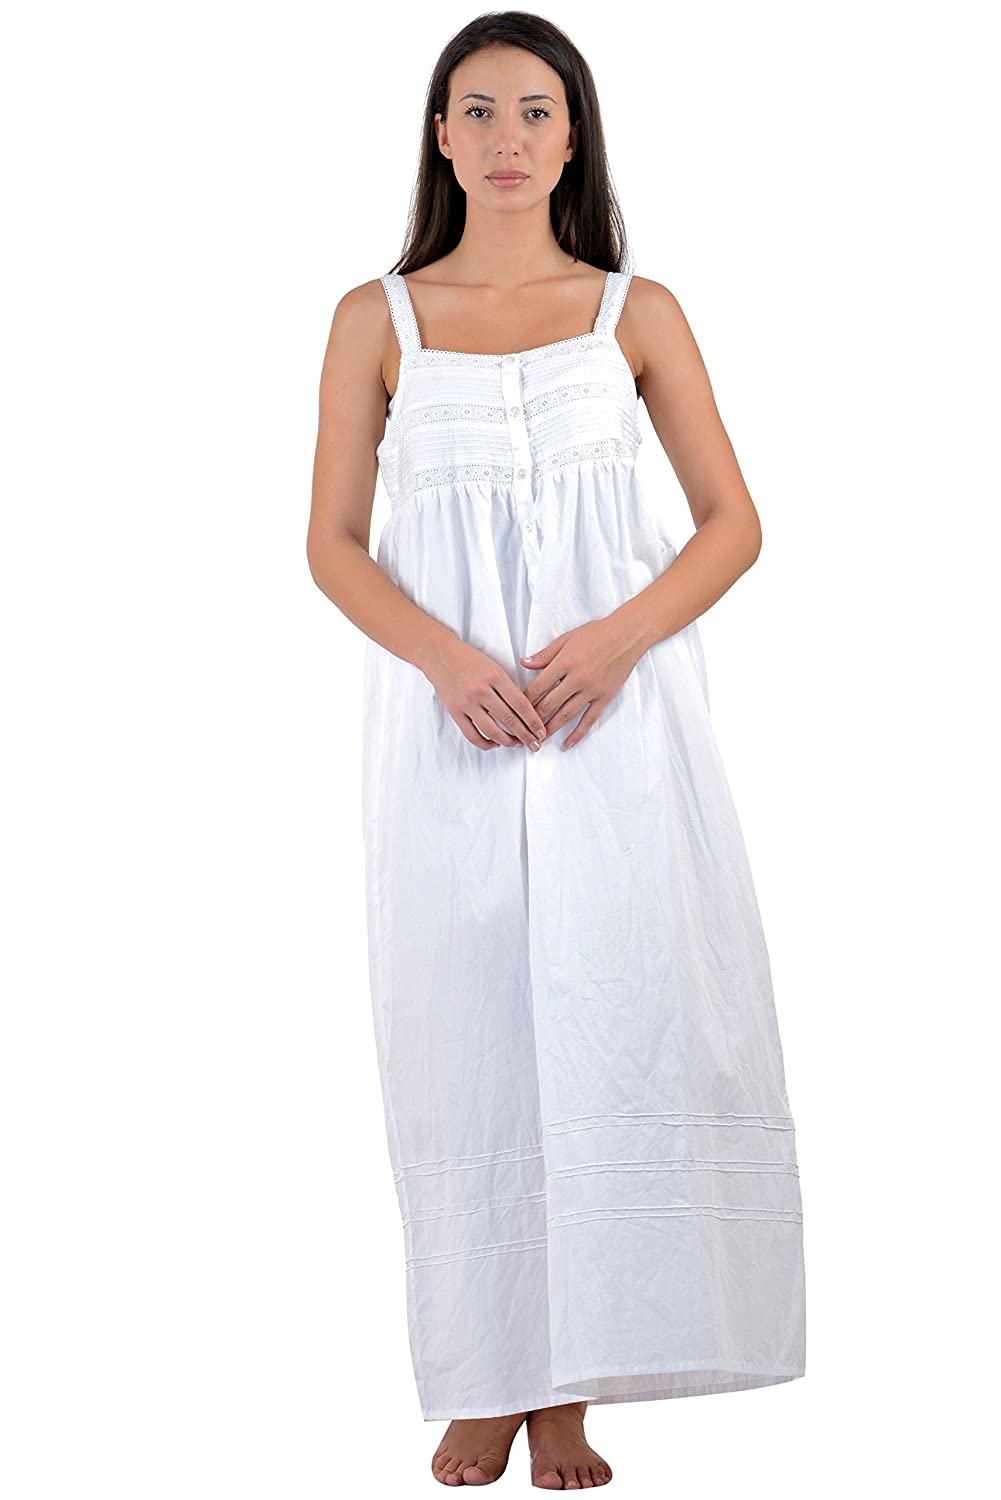 Cotton Lane Classic Cotton Sleeveless Nightdress C92WT